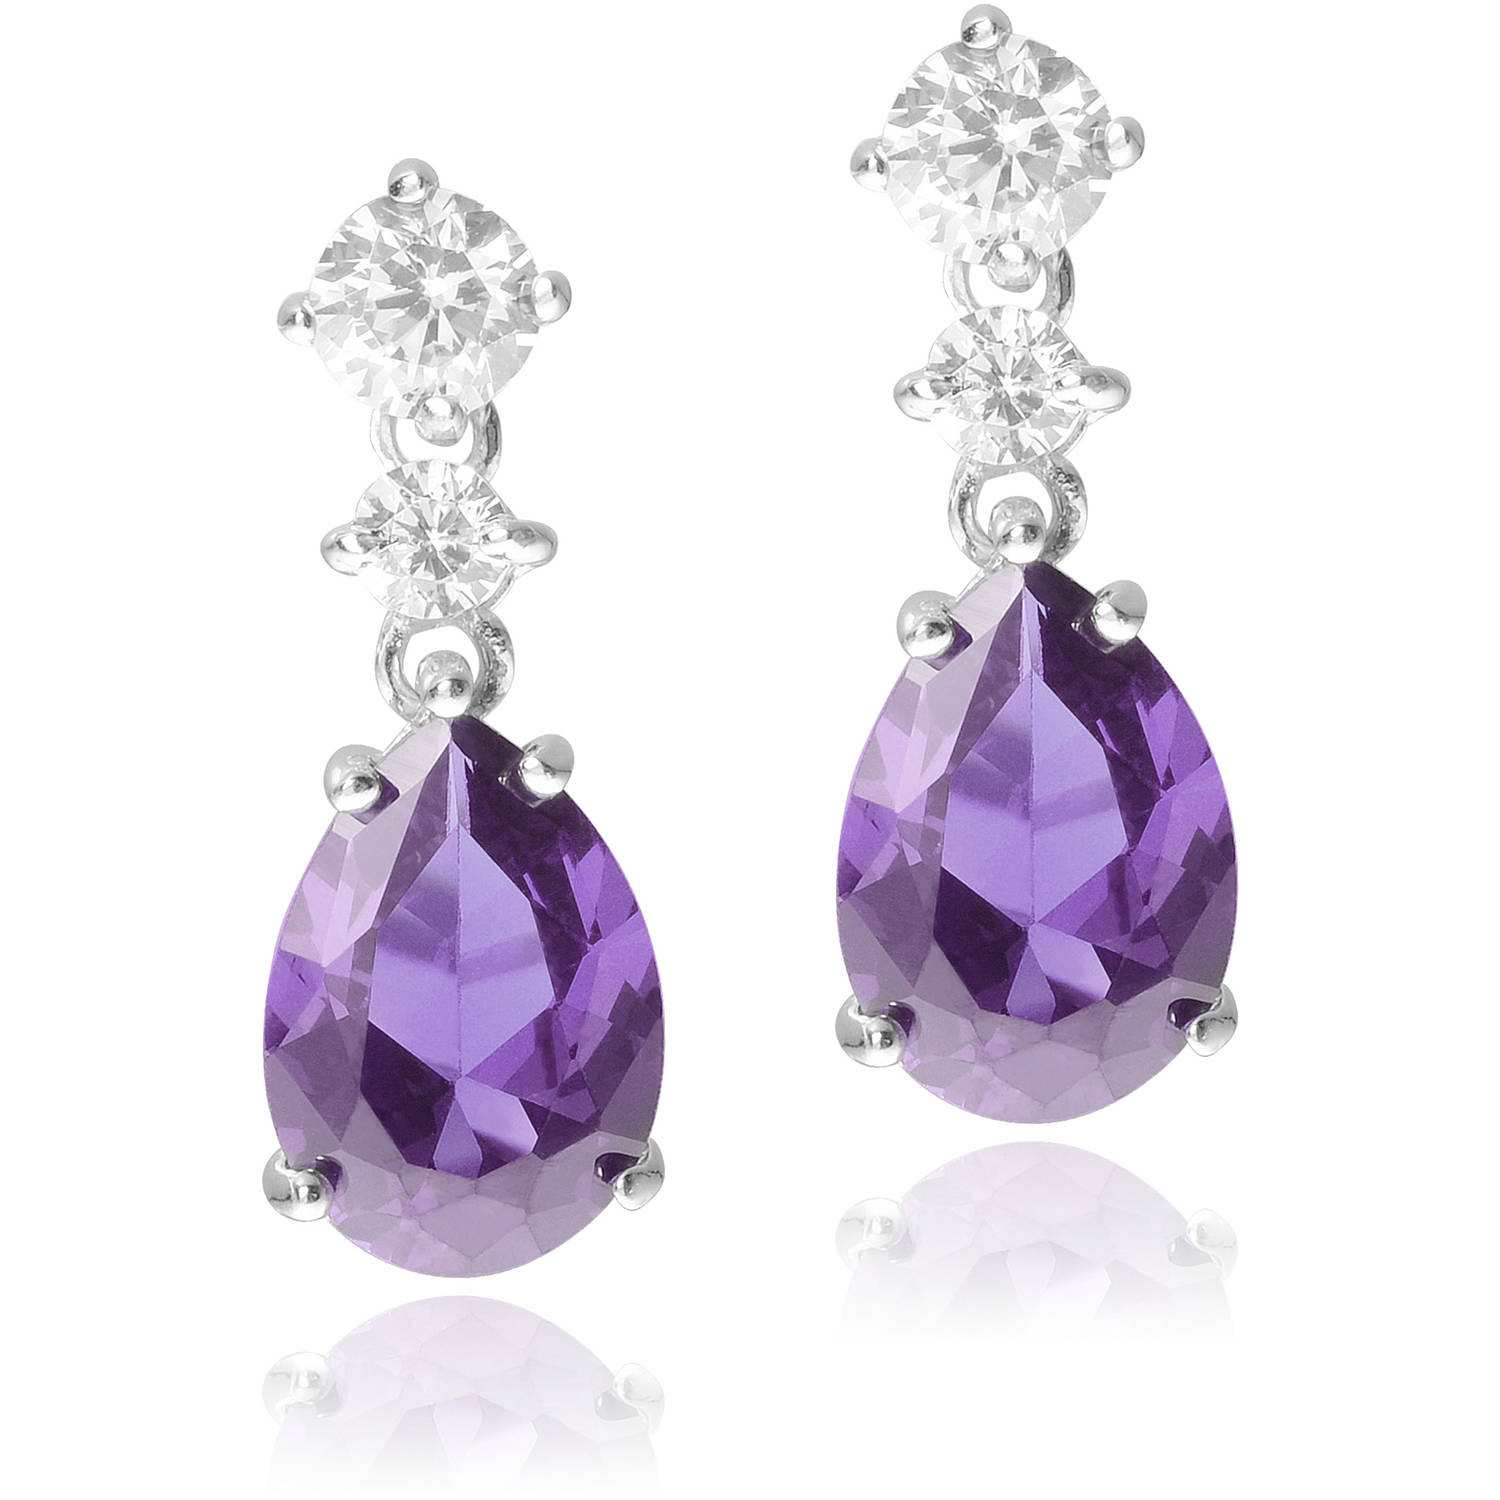 Brinley Co. Women's CZ Sterling Silver Teardrop Dangle Earrings, Purple